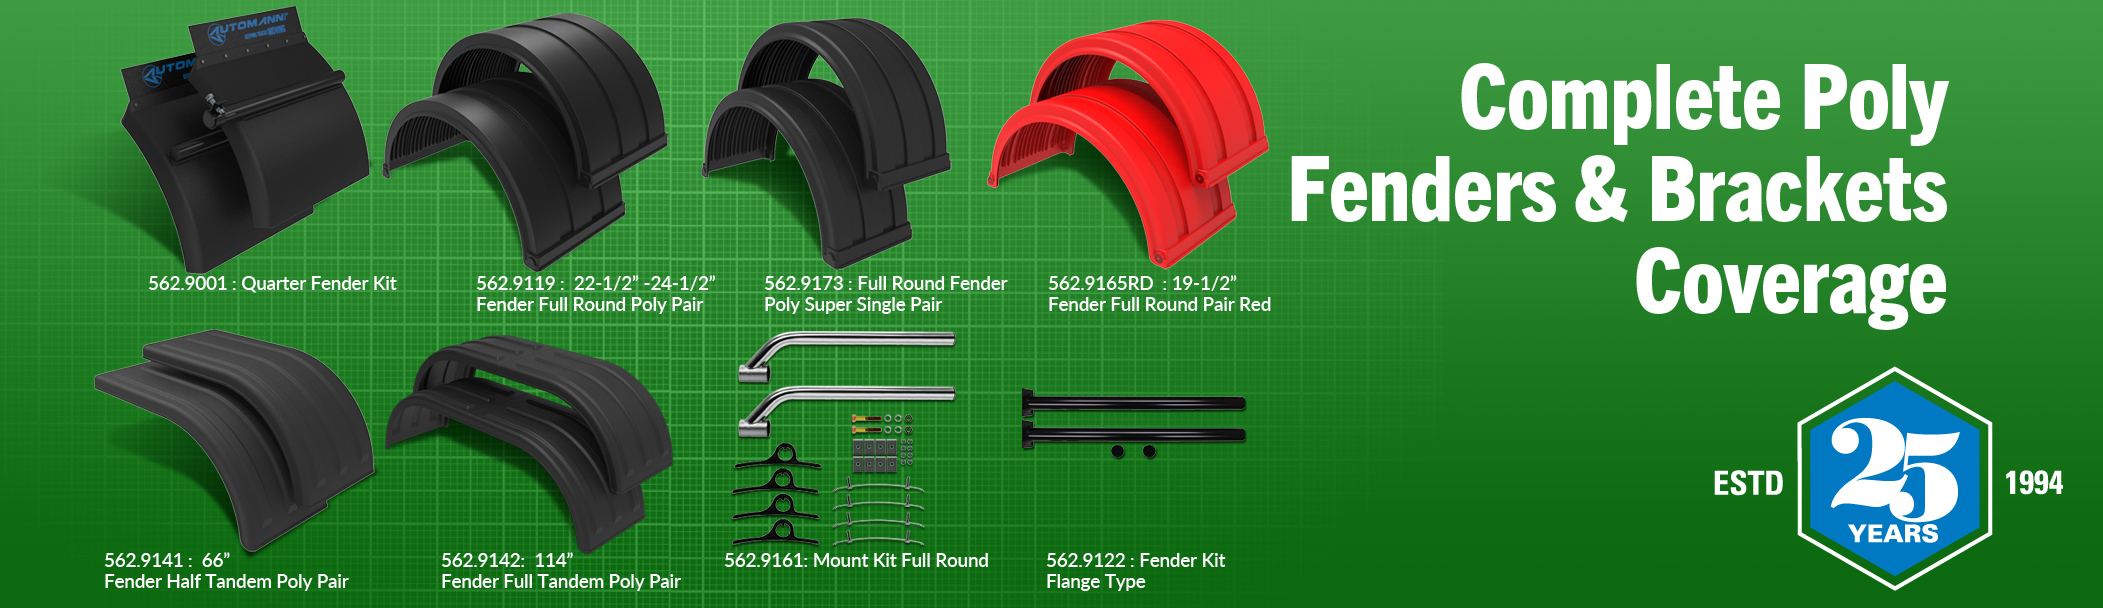 Complete Poly Fenders & Brackets Coverage